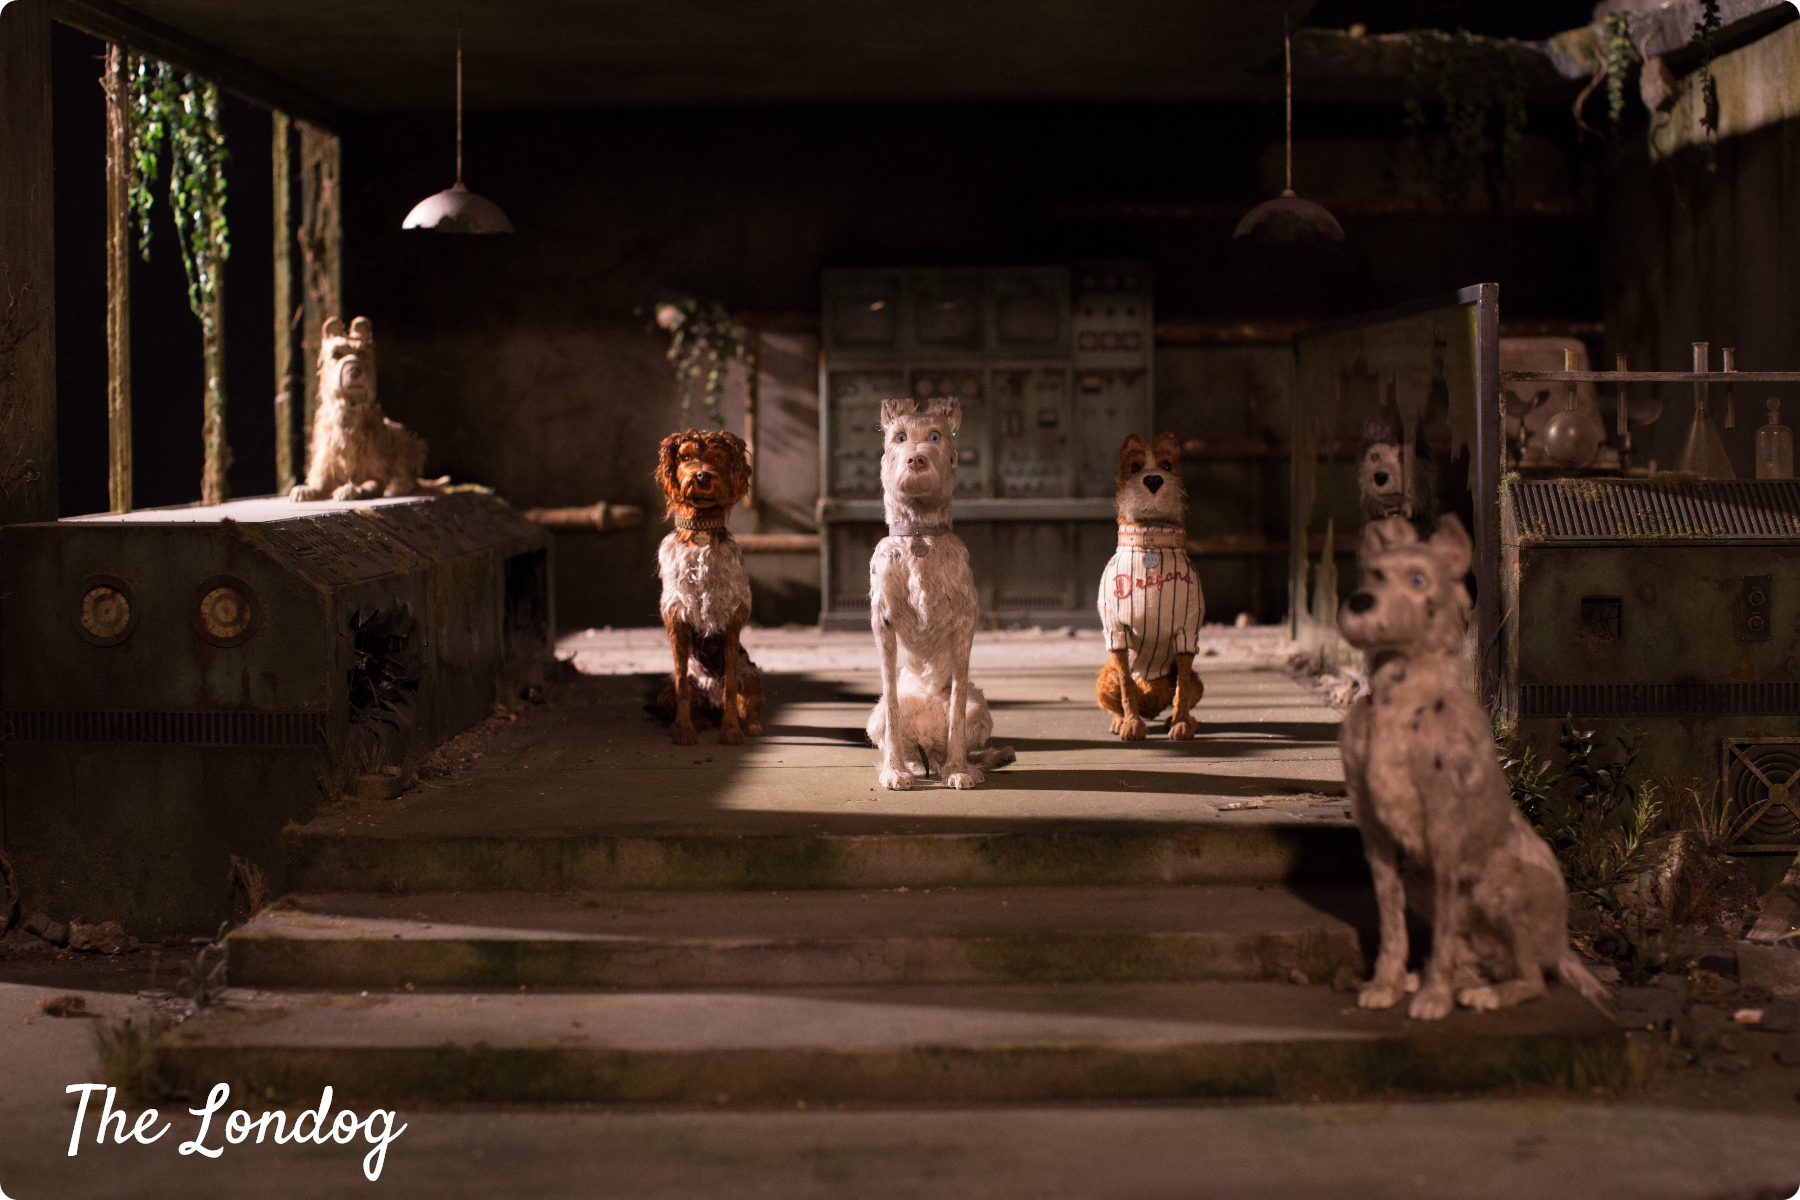 Scene with the dogs' puppets in a dark room from Isle of Dogs exhibition